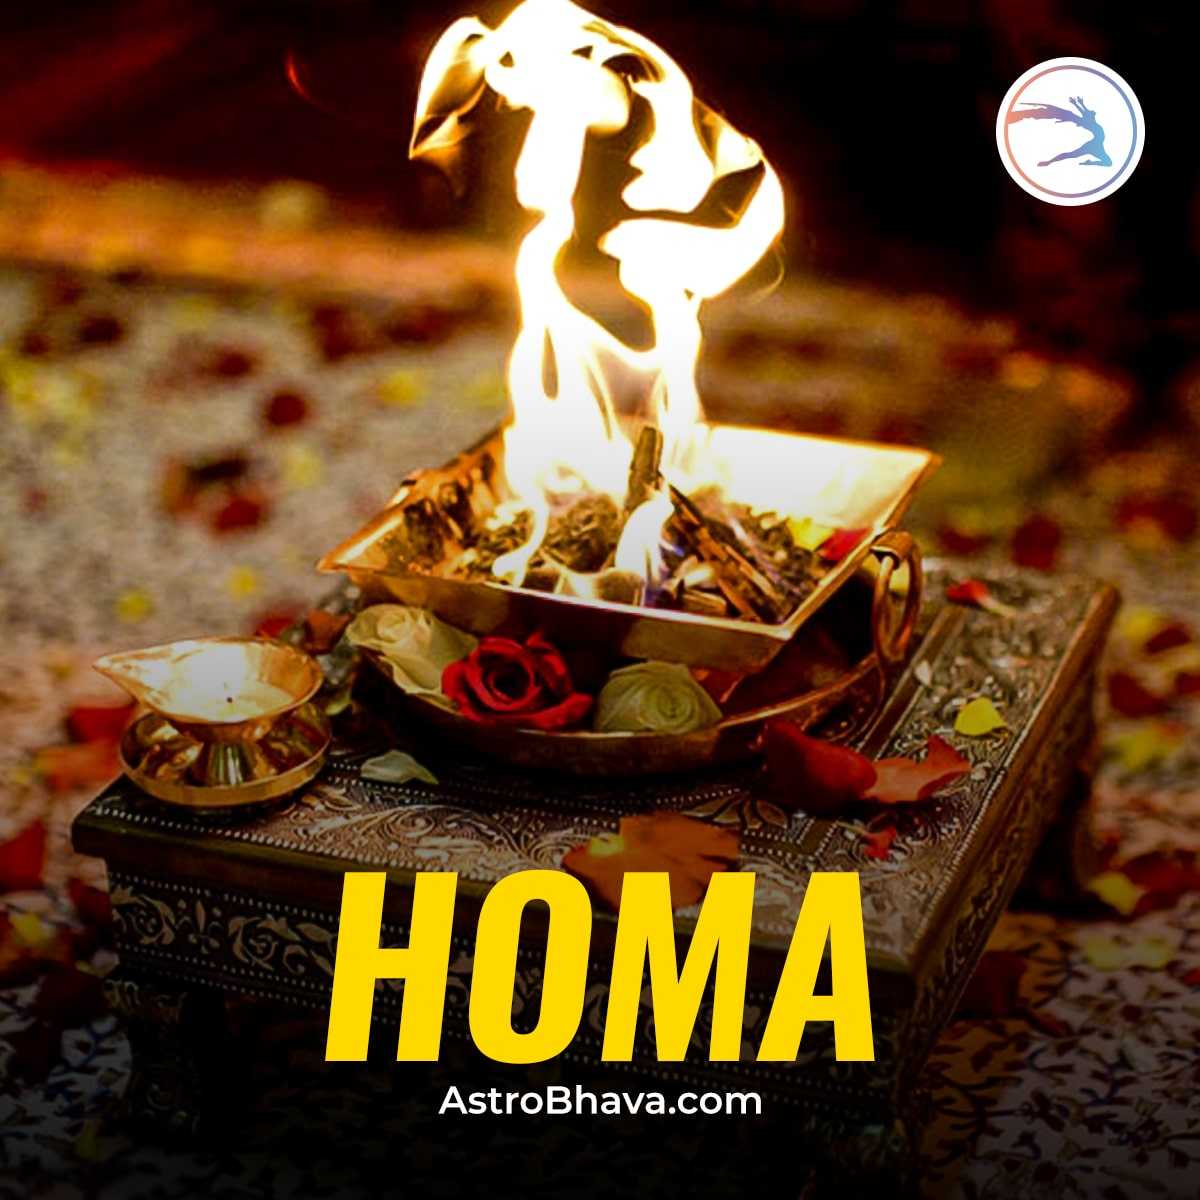 Book Online Homa Services with AstroBhava's Professional Vedic Priests